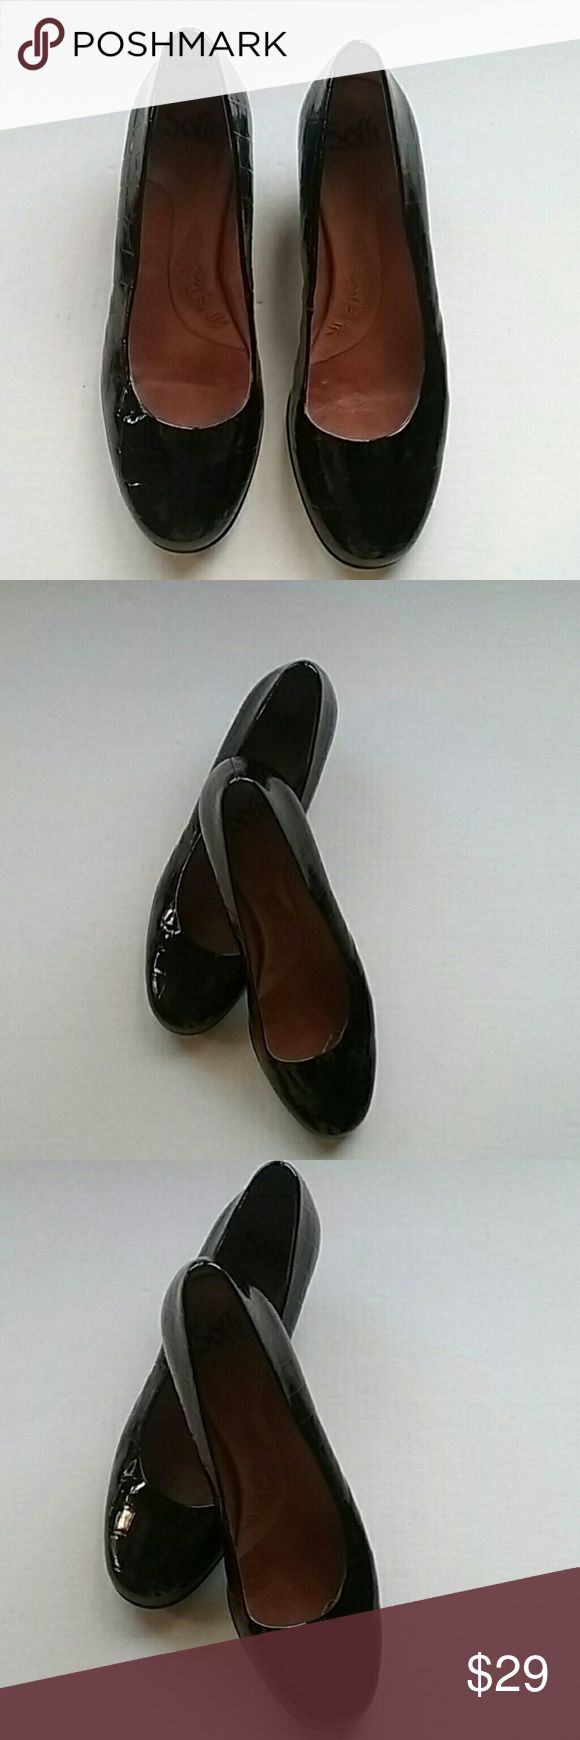 Sooft Moc Croc 10M ladies pumps shoes Is a pair of soft Moc Croc ladies shoes pumps. The heel is about 1/2 half inches 2 to inches. They are in like new condition. They are cleaned and sanitized and ready to be shipped to you. sooft Shoes Heels